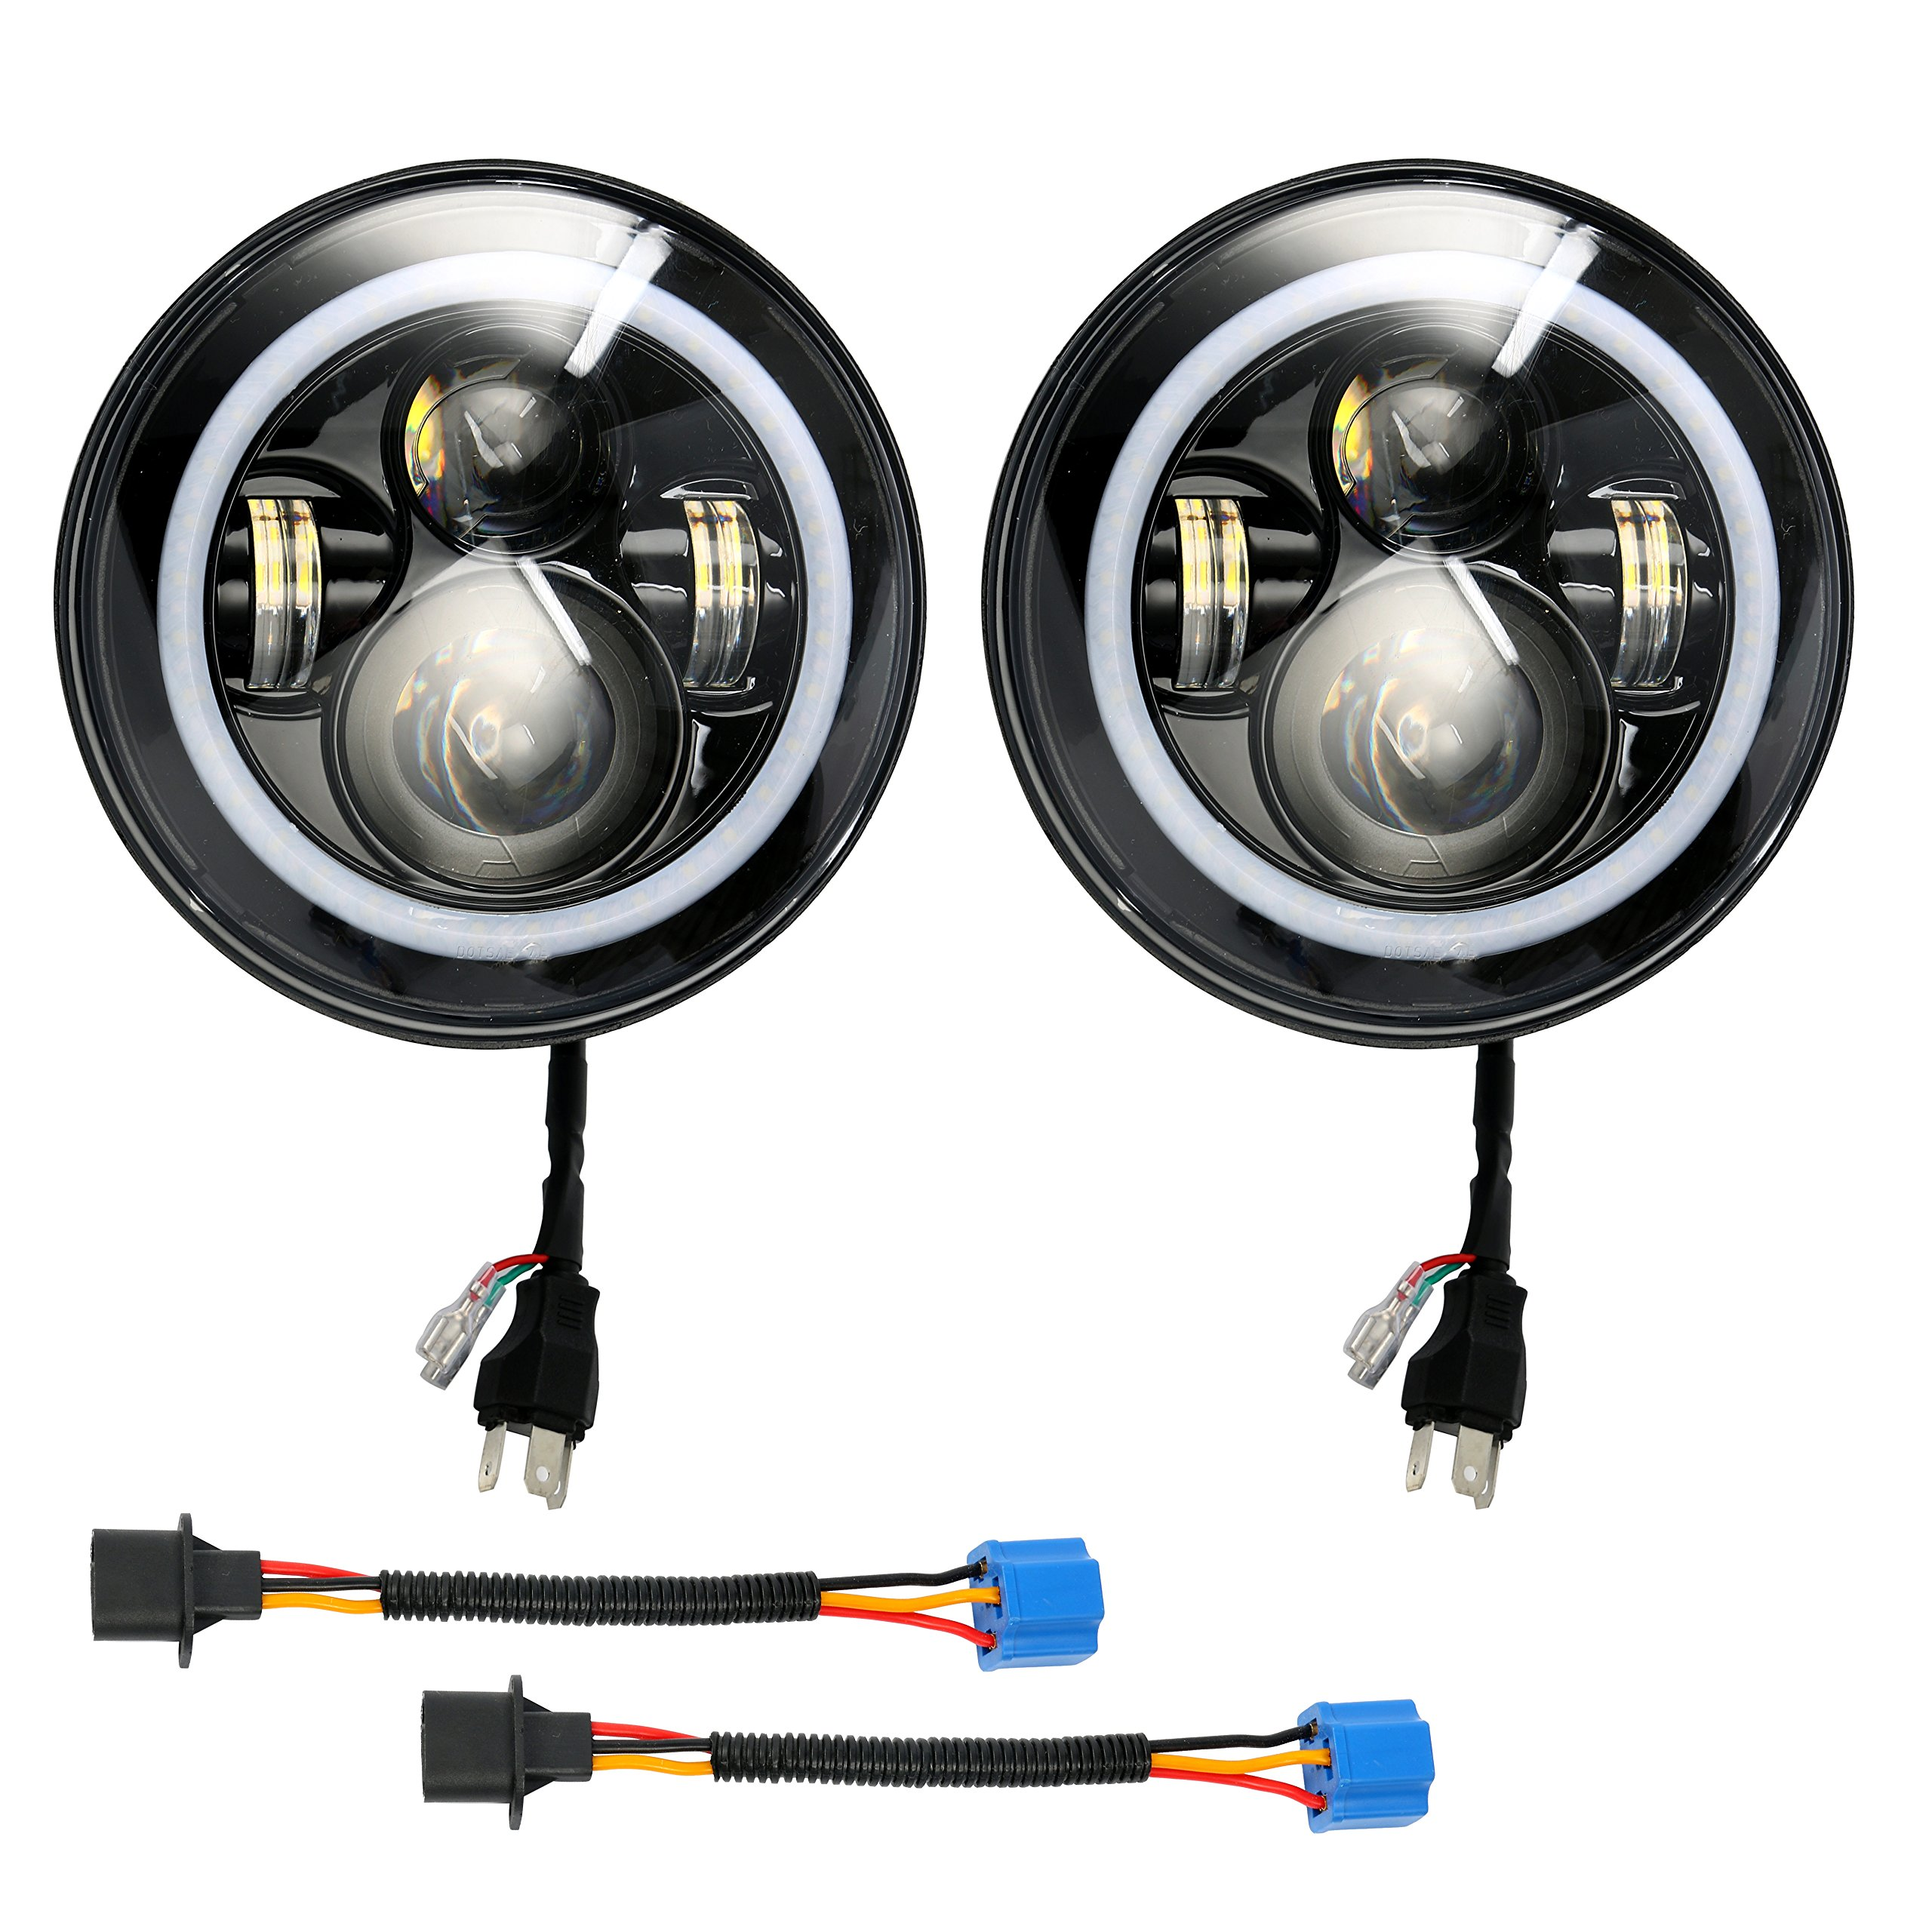 Cheap Jk Led Find Deals On Line At Alibabacom Lp530 Wiring Harness Get Quotations Yaetek 1 Pair 7 Round Angel Eyes Cree Halo Headlight For Jeep Wrangler